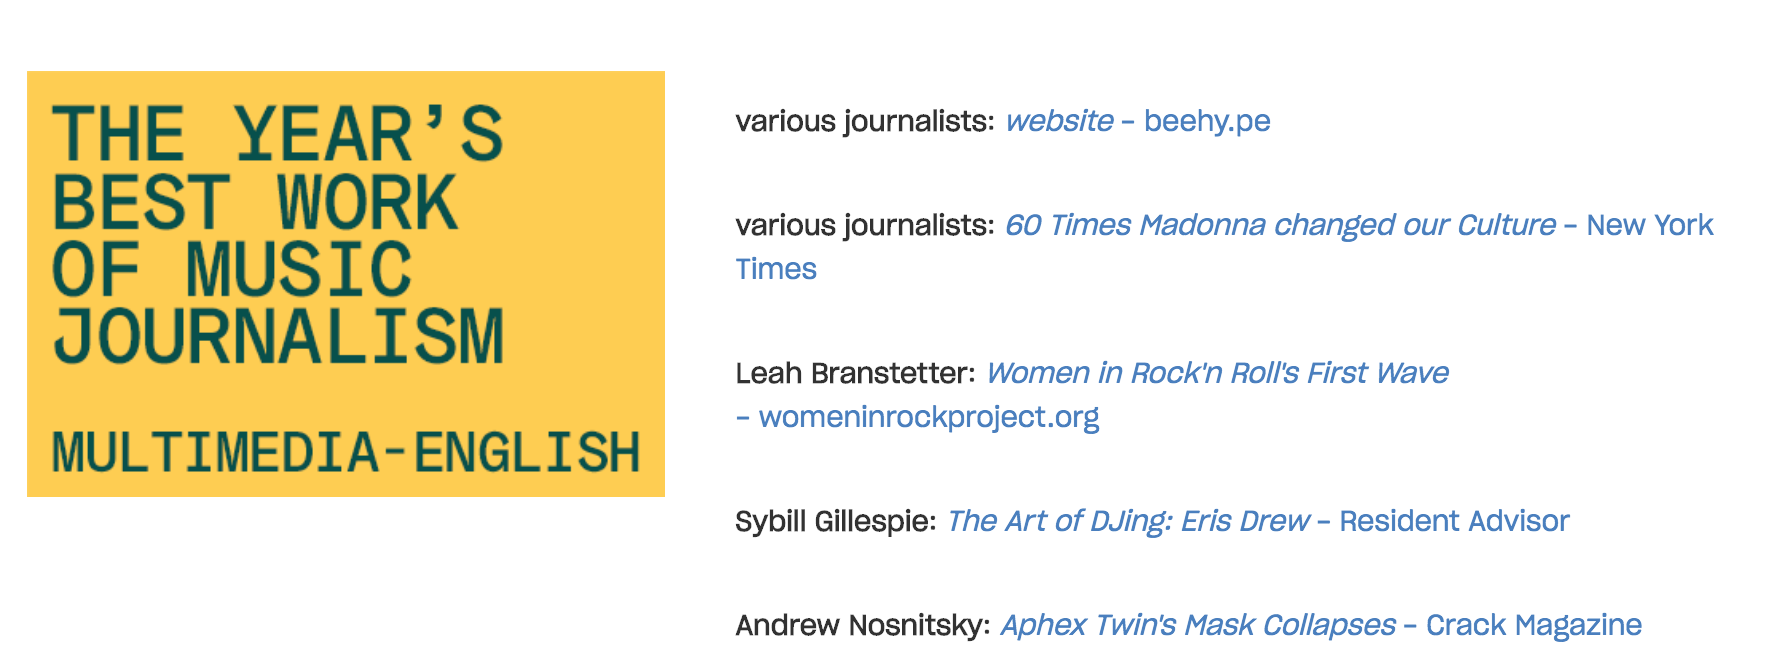 Shortlist for Reeperbahn Festival International Music Journalism Awards, English Multimedia category, with Womeninrockproject.org included.